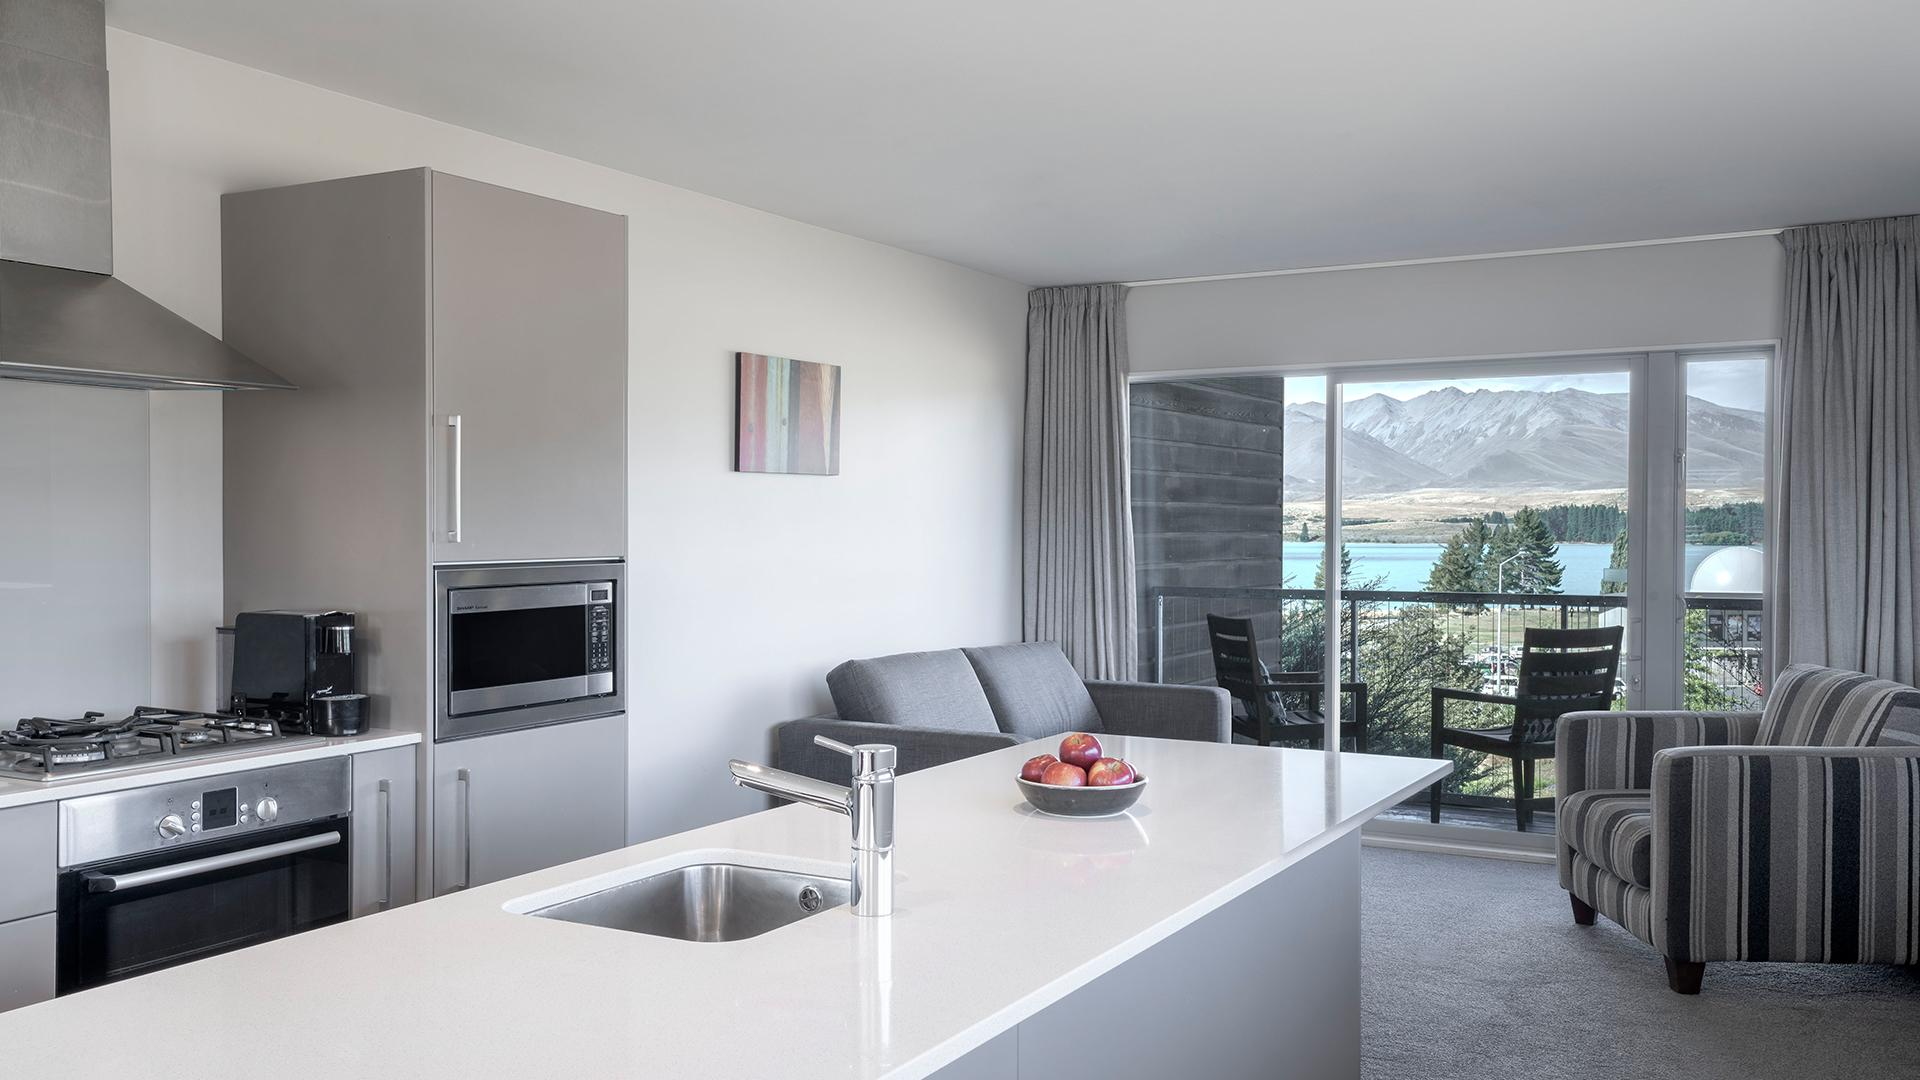 Two-Bedroom Lakeview Suite image 1 at Peppers Bluewater Resort Lake Tekapo by null, Canterbury, New Zealand